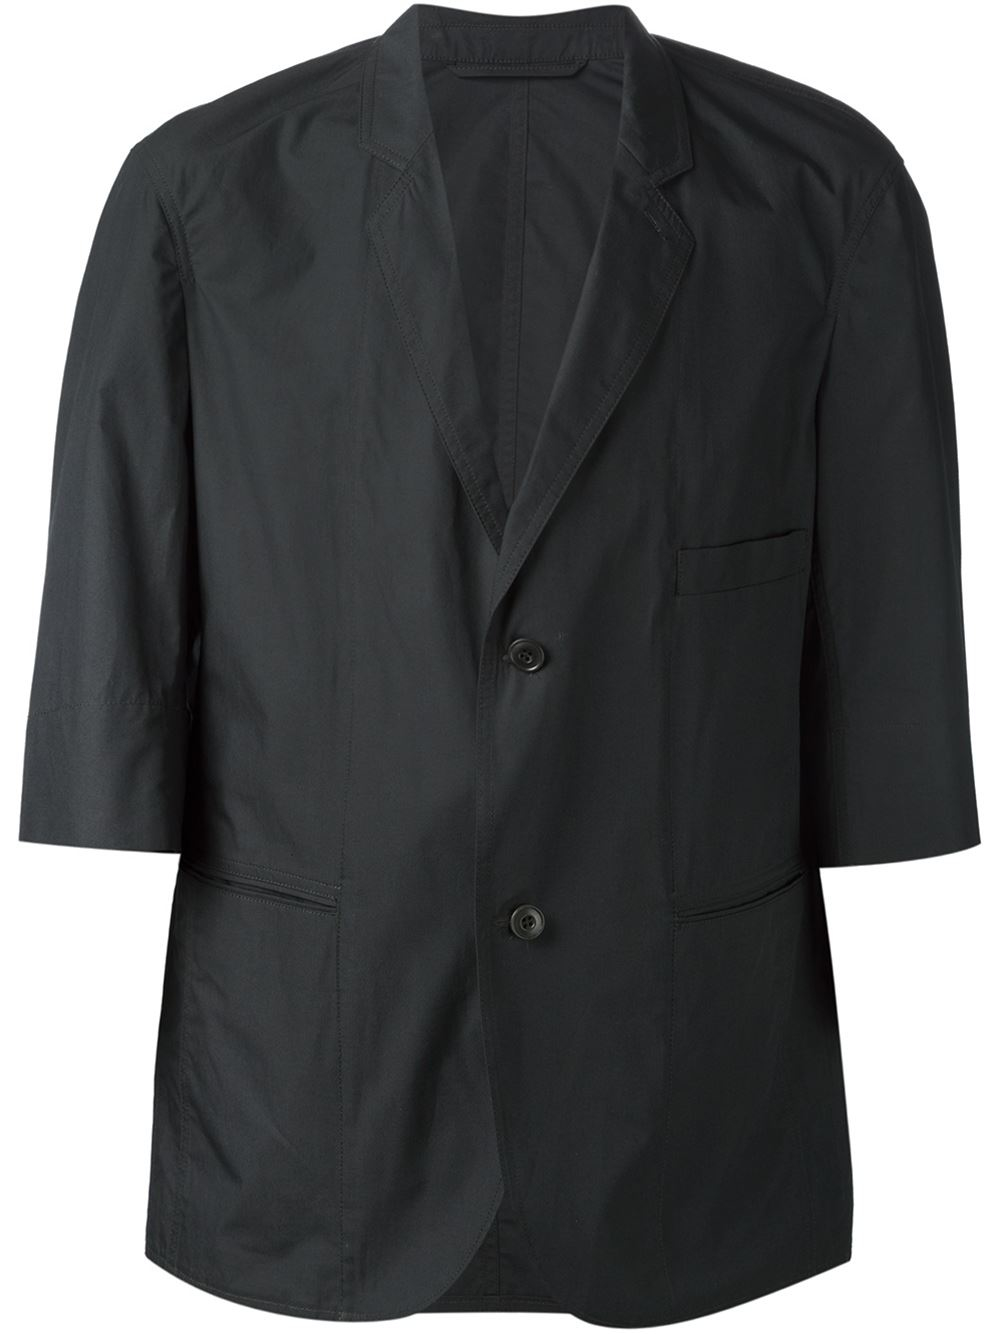 Short Sleeve Jacket. When making a fashion statement, a short sleeve jacket allows a woman or a junior to do so with style and grace. Though a jacket is typically thought of as having long sleeves in order to provide the maximum in warmth, short sleeve styles offer a degree of warmth, while also allowing a junior or a woman to show off her sense of style.